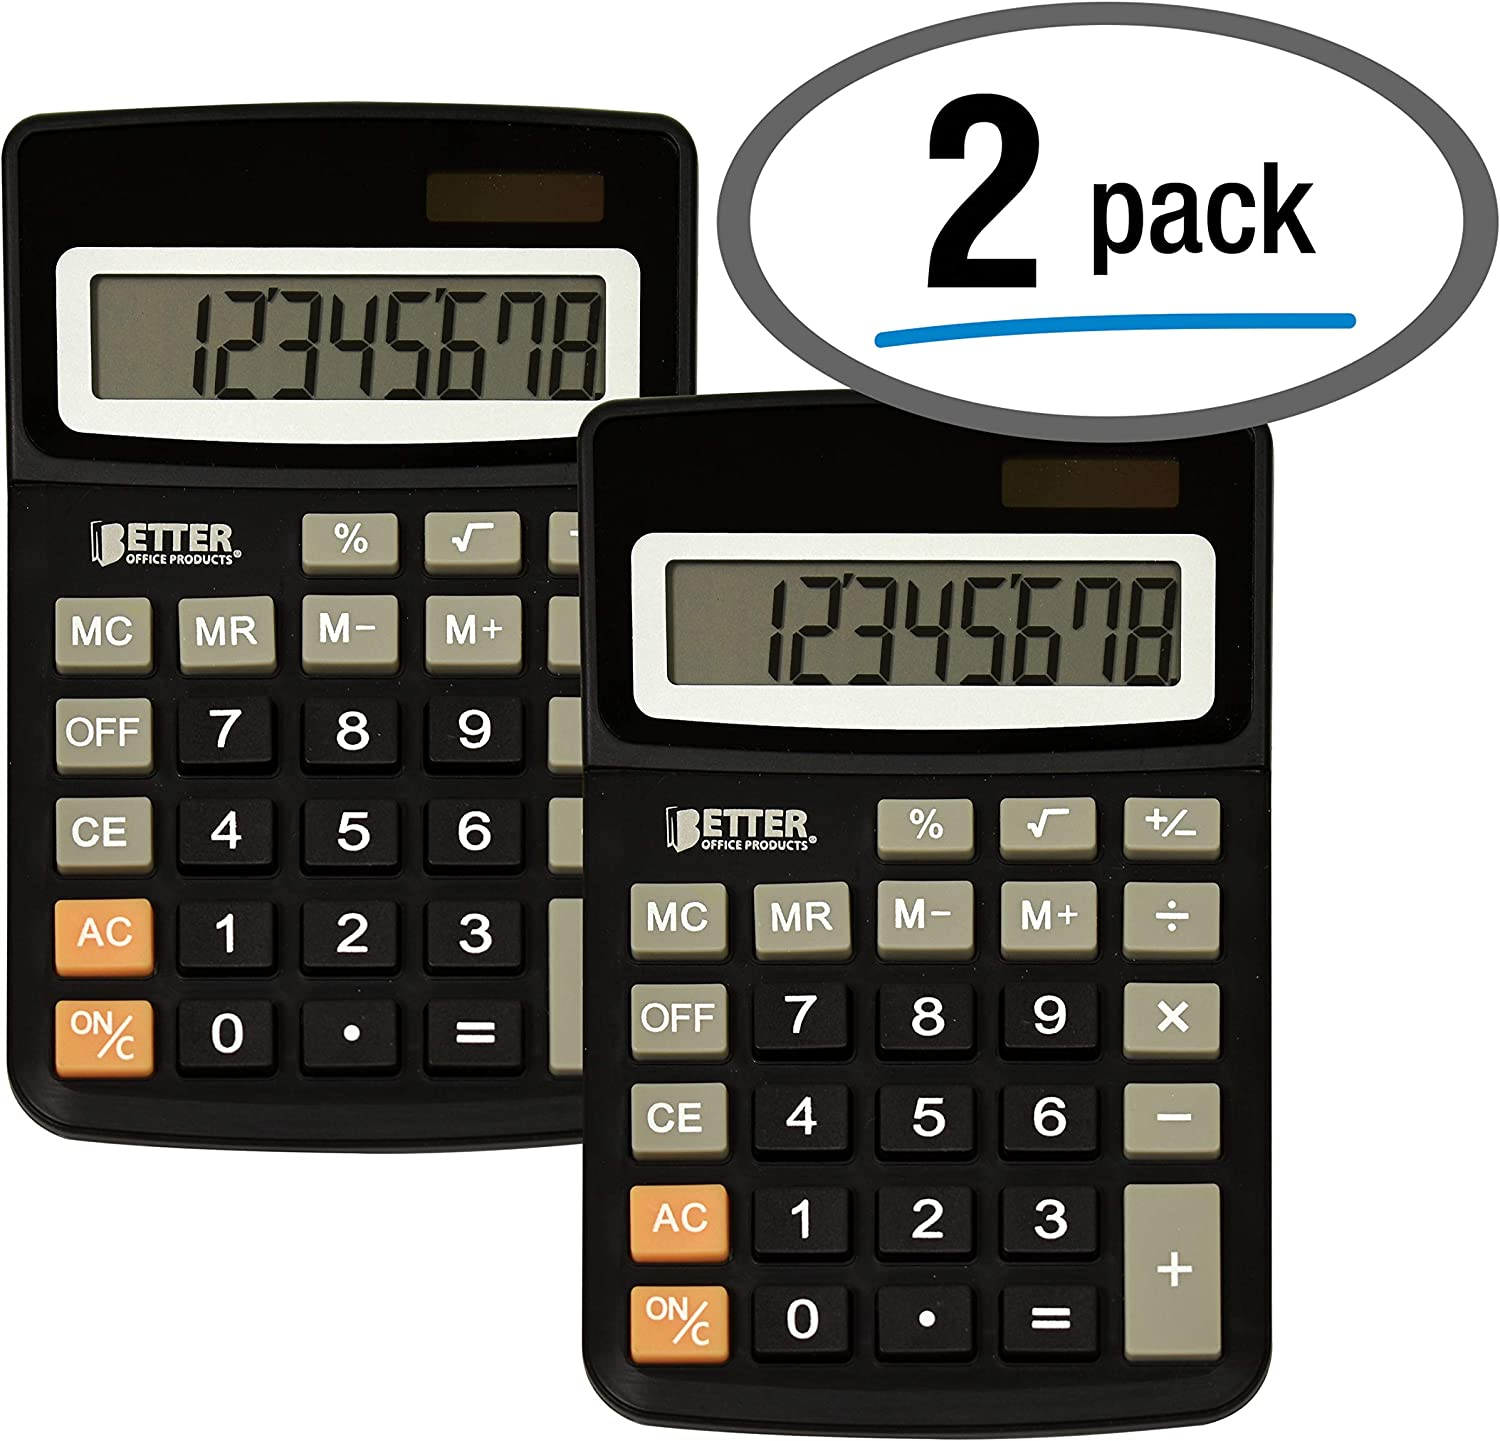 Desktop Calculators, Handheld Angled 8-Digit LCD Display, 2 Pack, by Better Office Products, Standard Function, Black, Dual Power with Included Button Battery, 2 Pack